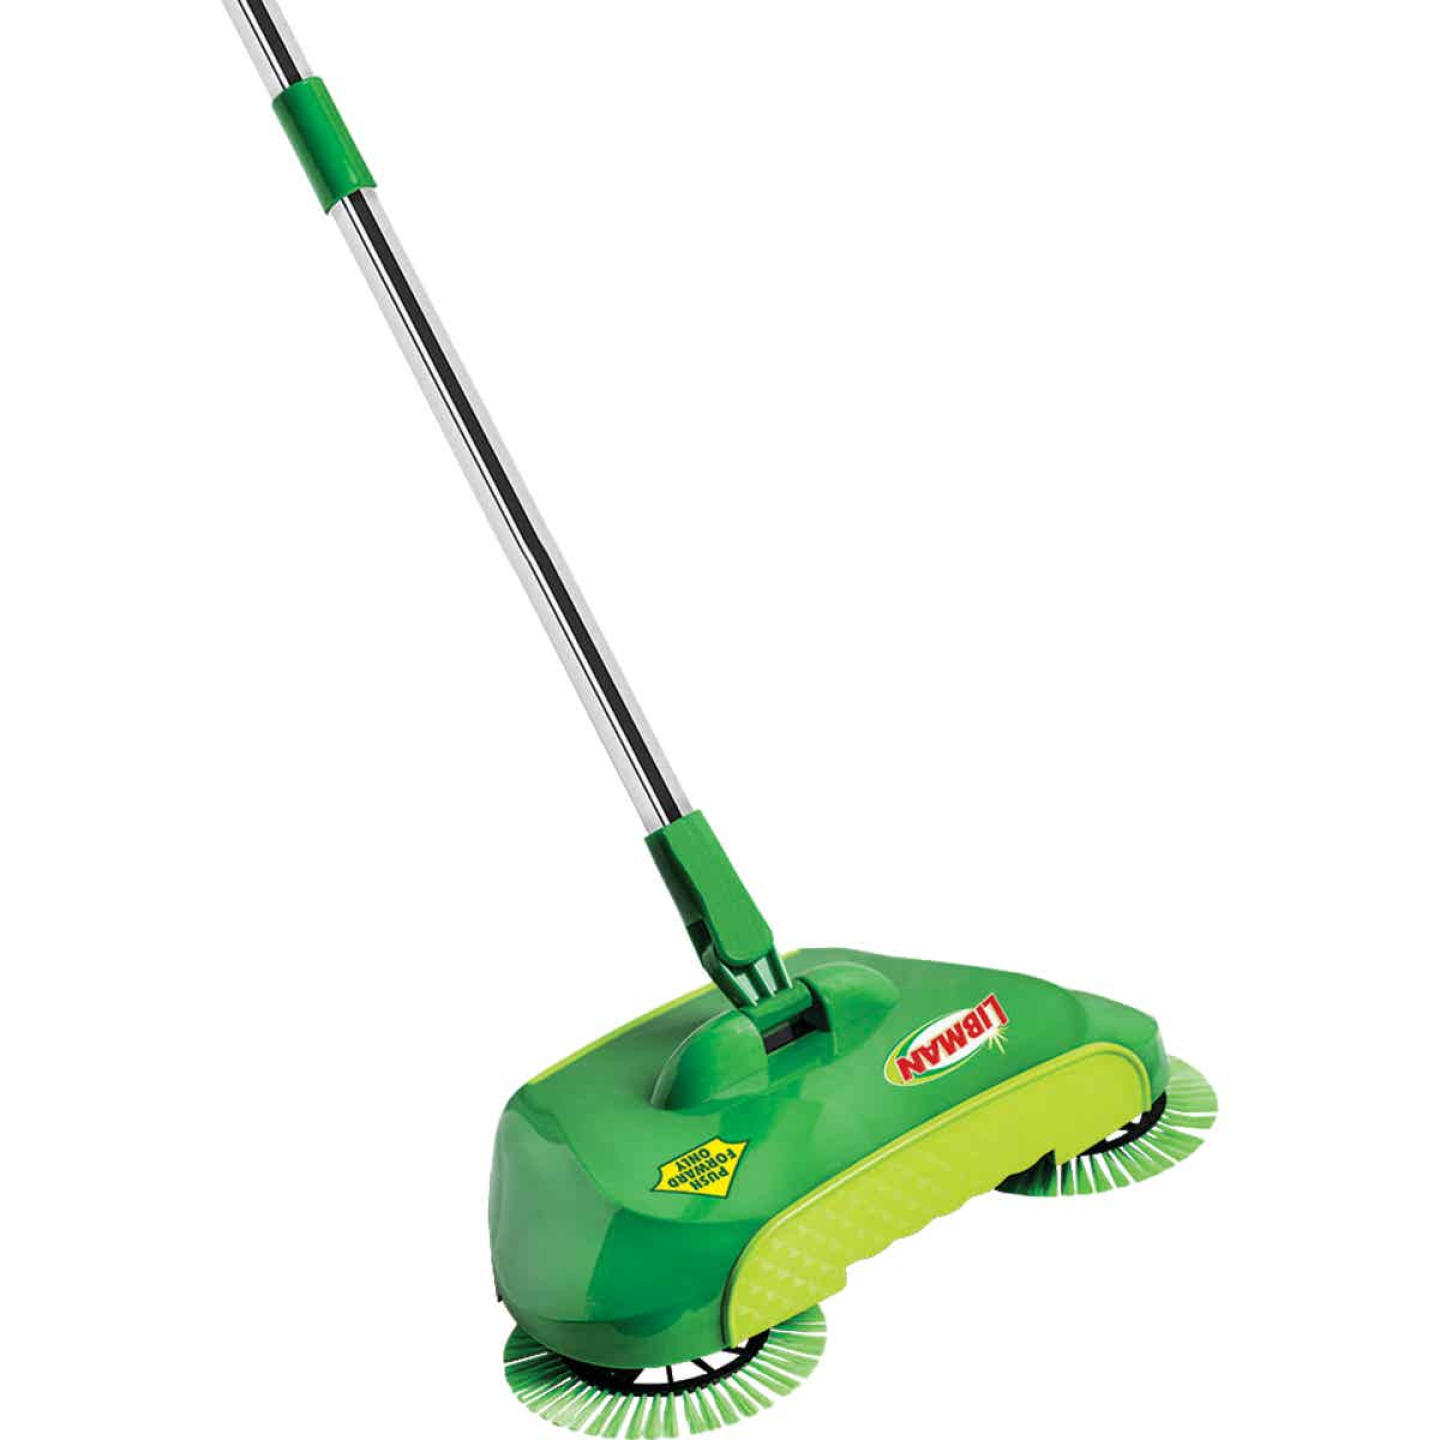 Libman SpiralSweep 12 In. W. x 45 In. L. Steel Handle Broom Image 1